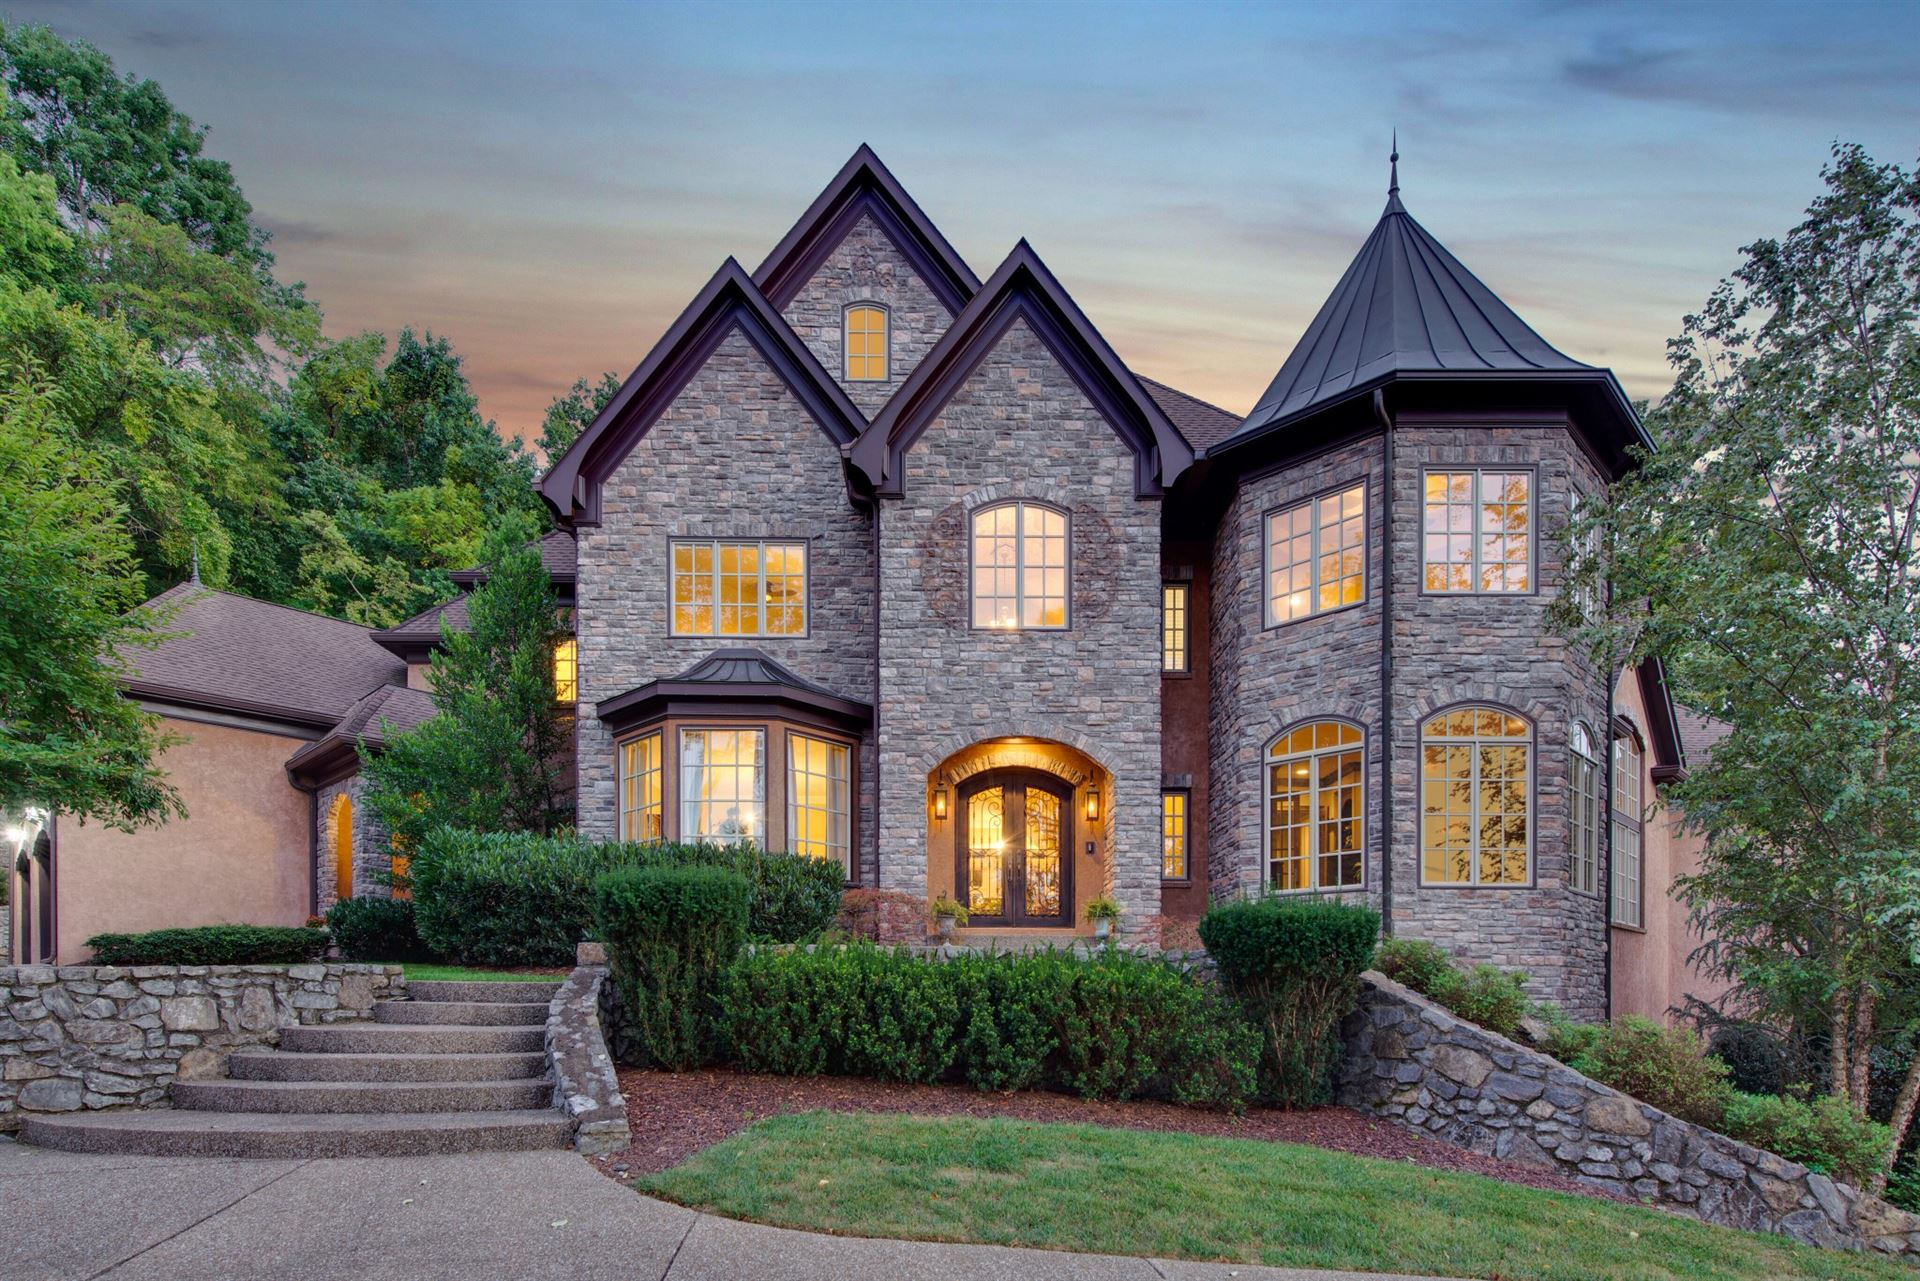 395 The Lady of the Lake Ln, Franklin, TN 37067 - MLS#: 2296970